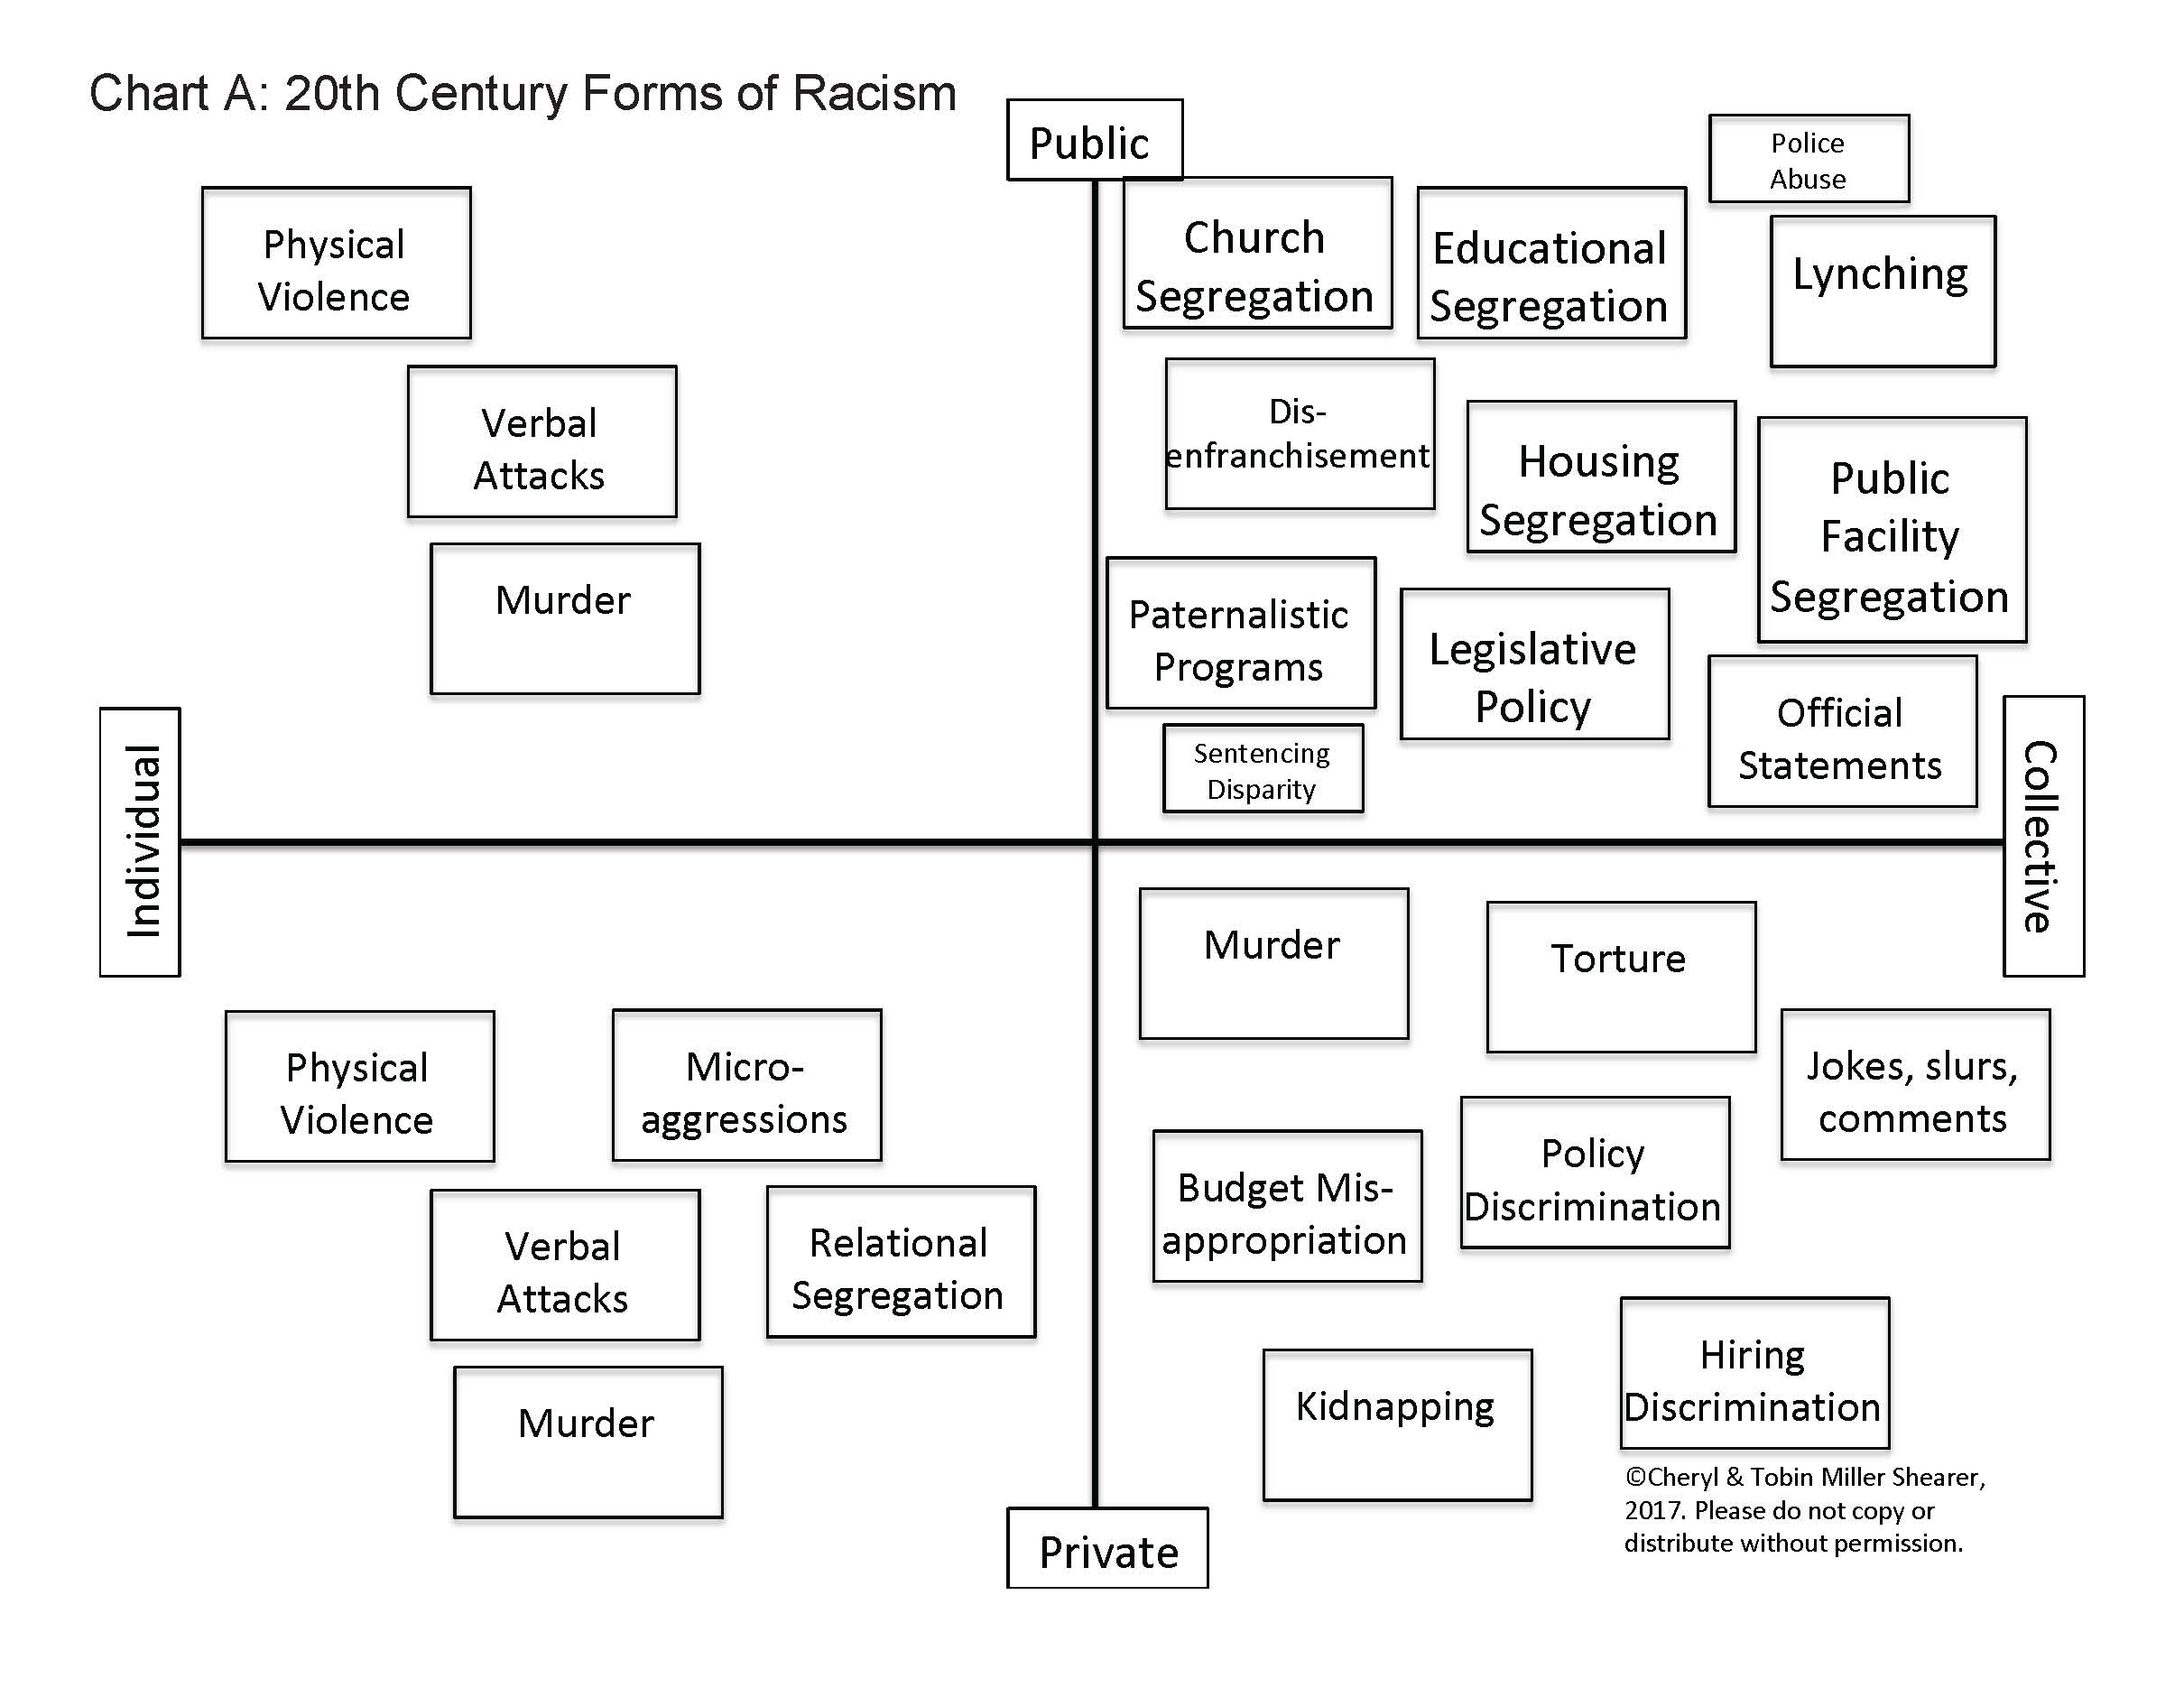 Lancaster Conference response to racism - Chart A